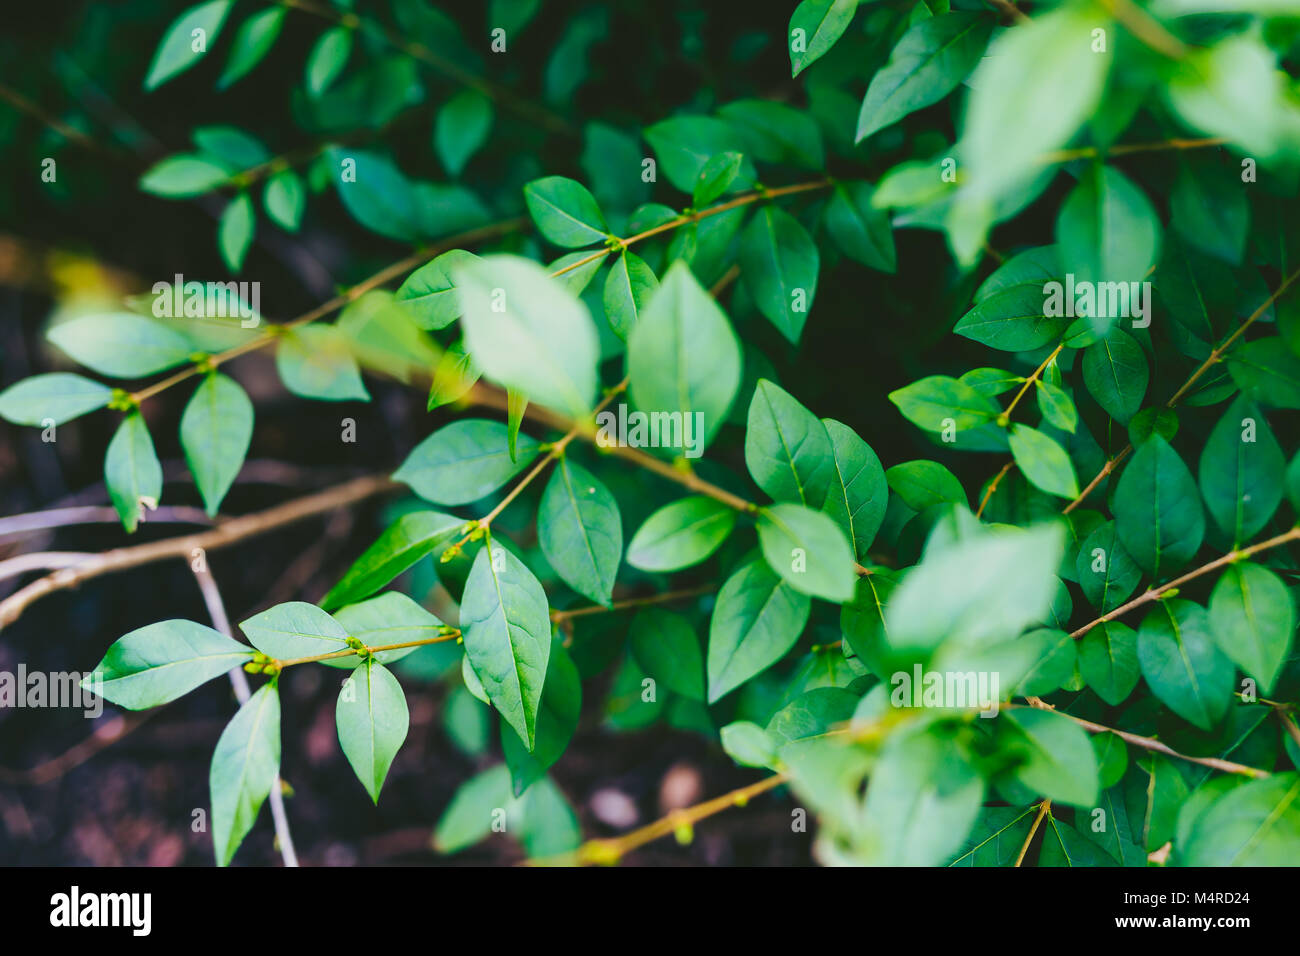 green branches shot at shallow depth of field in a city park in Dublin, Ireland - Stock Image